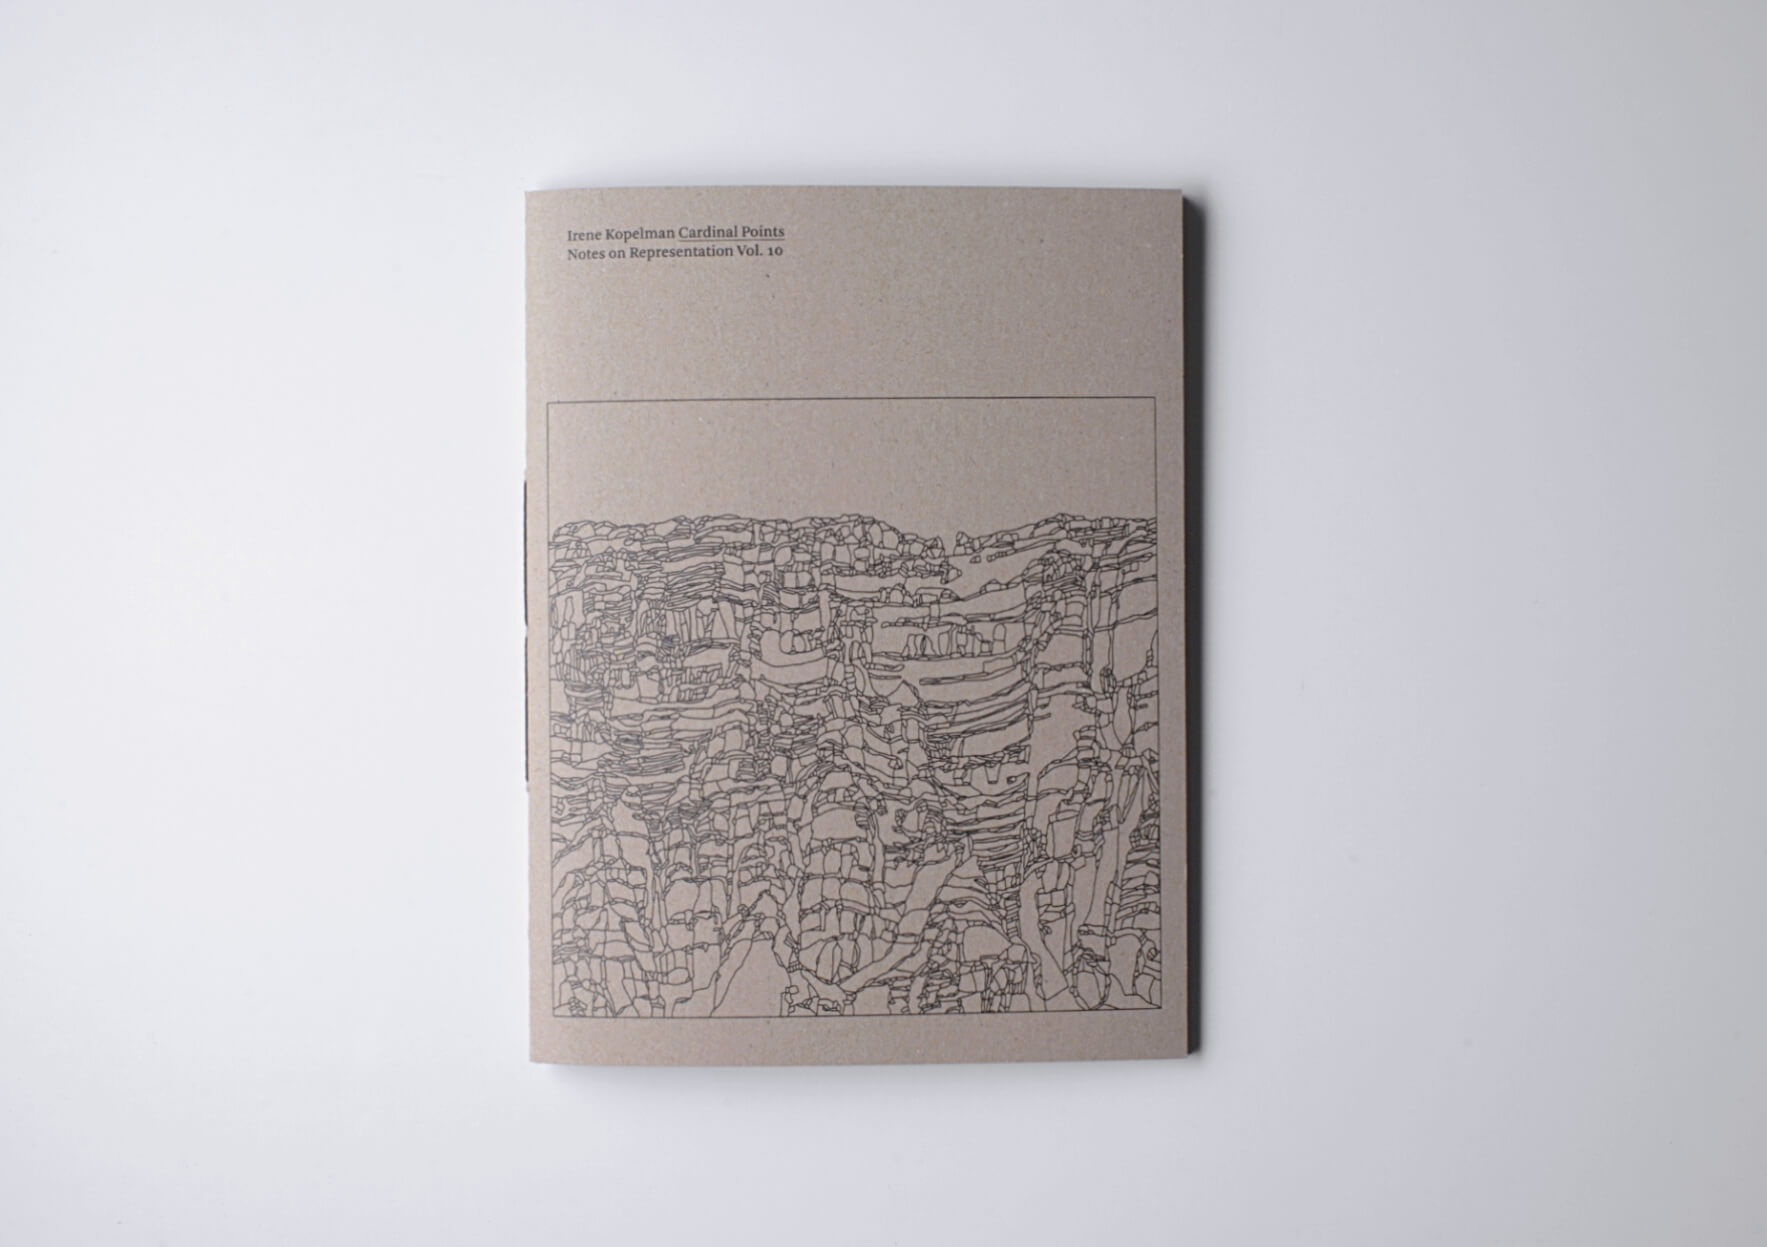 Irene Kopelman Cardinal Points. Notes on Representation V.10, 2019 28 x 21 cm, 84 p. Texts in English. Ed. Roma Publications | Mother | ProjecteSD